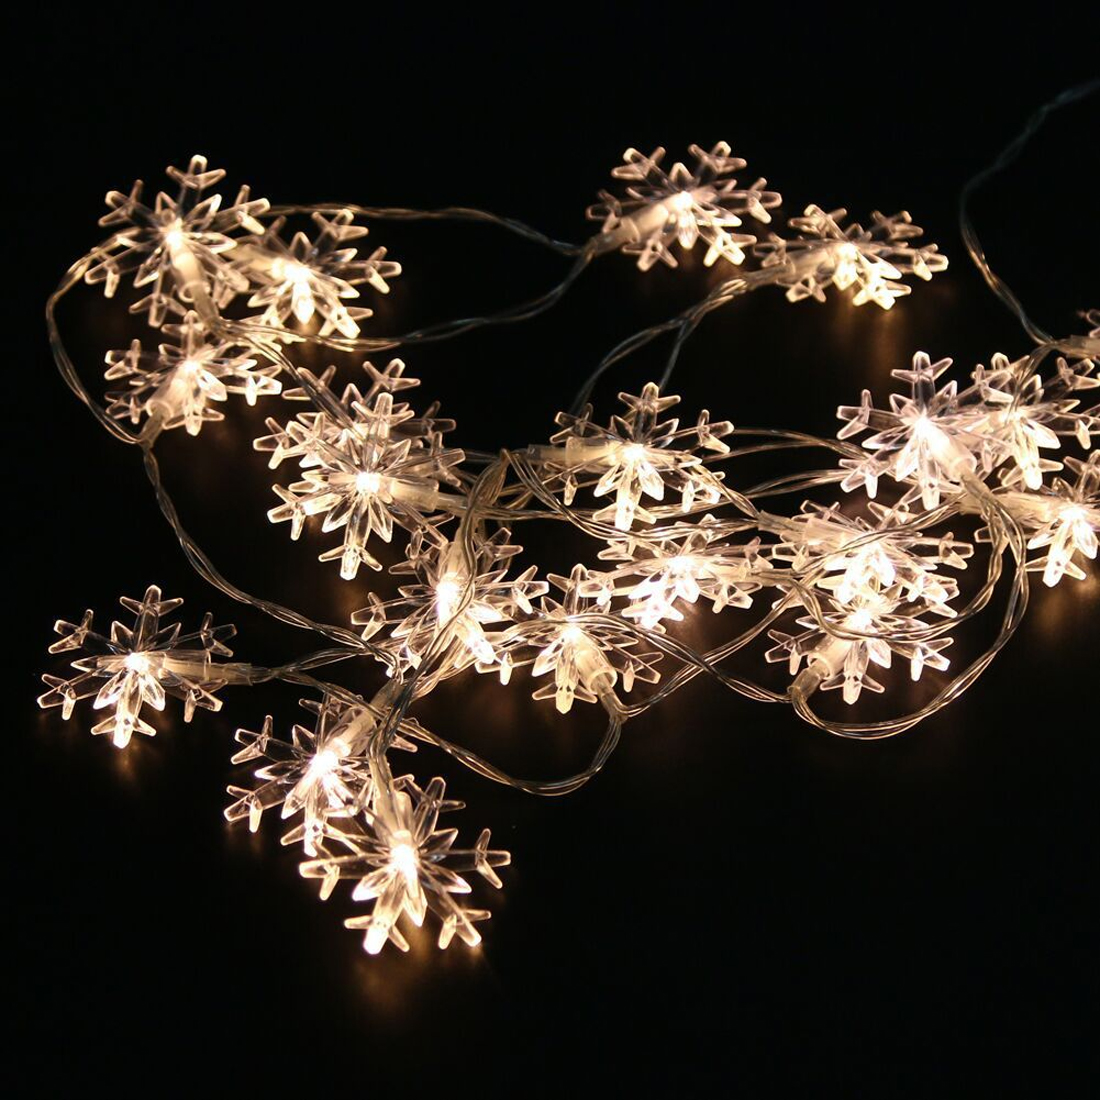 New Lights Outdoor 10m 100LED String Lights Garden Light for Home Wedding Party Decorati ...